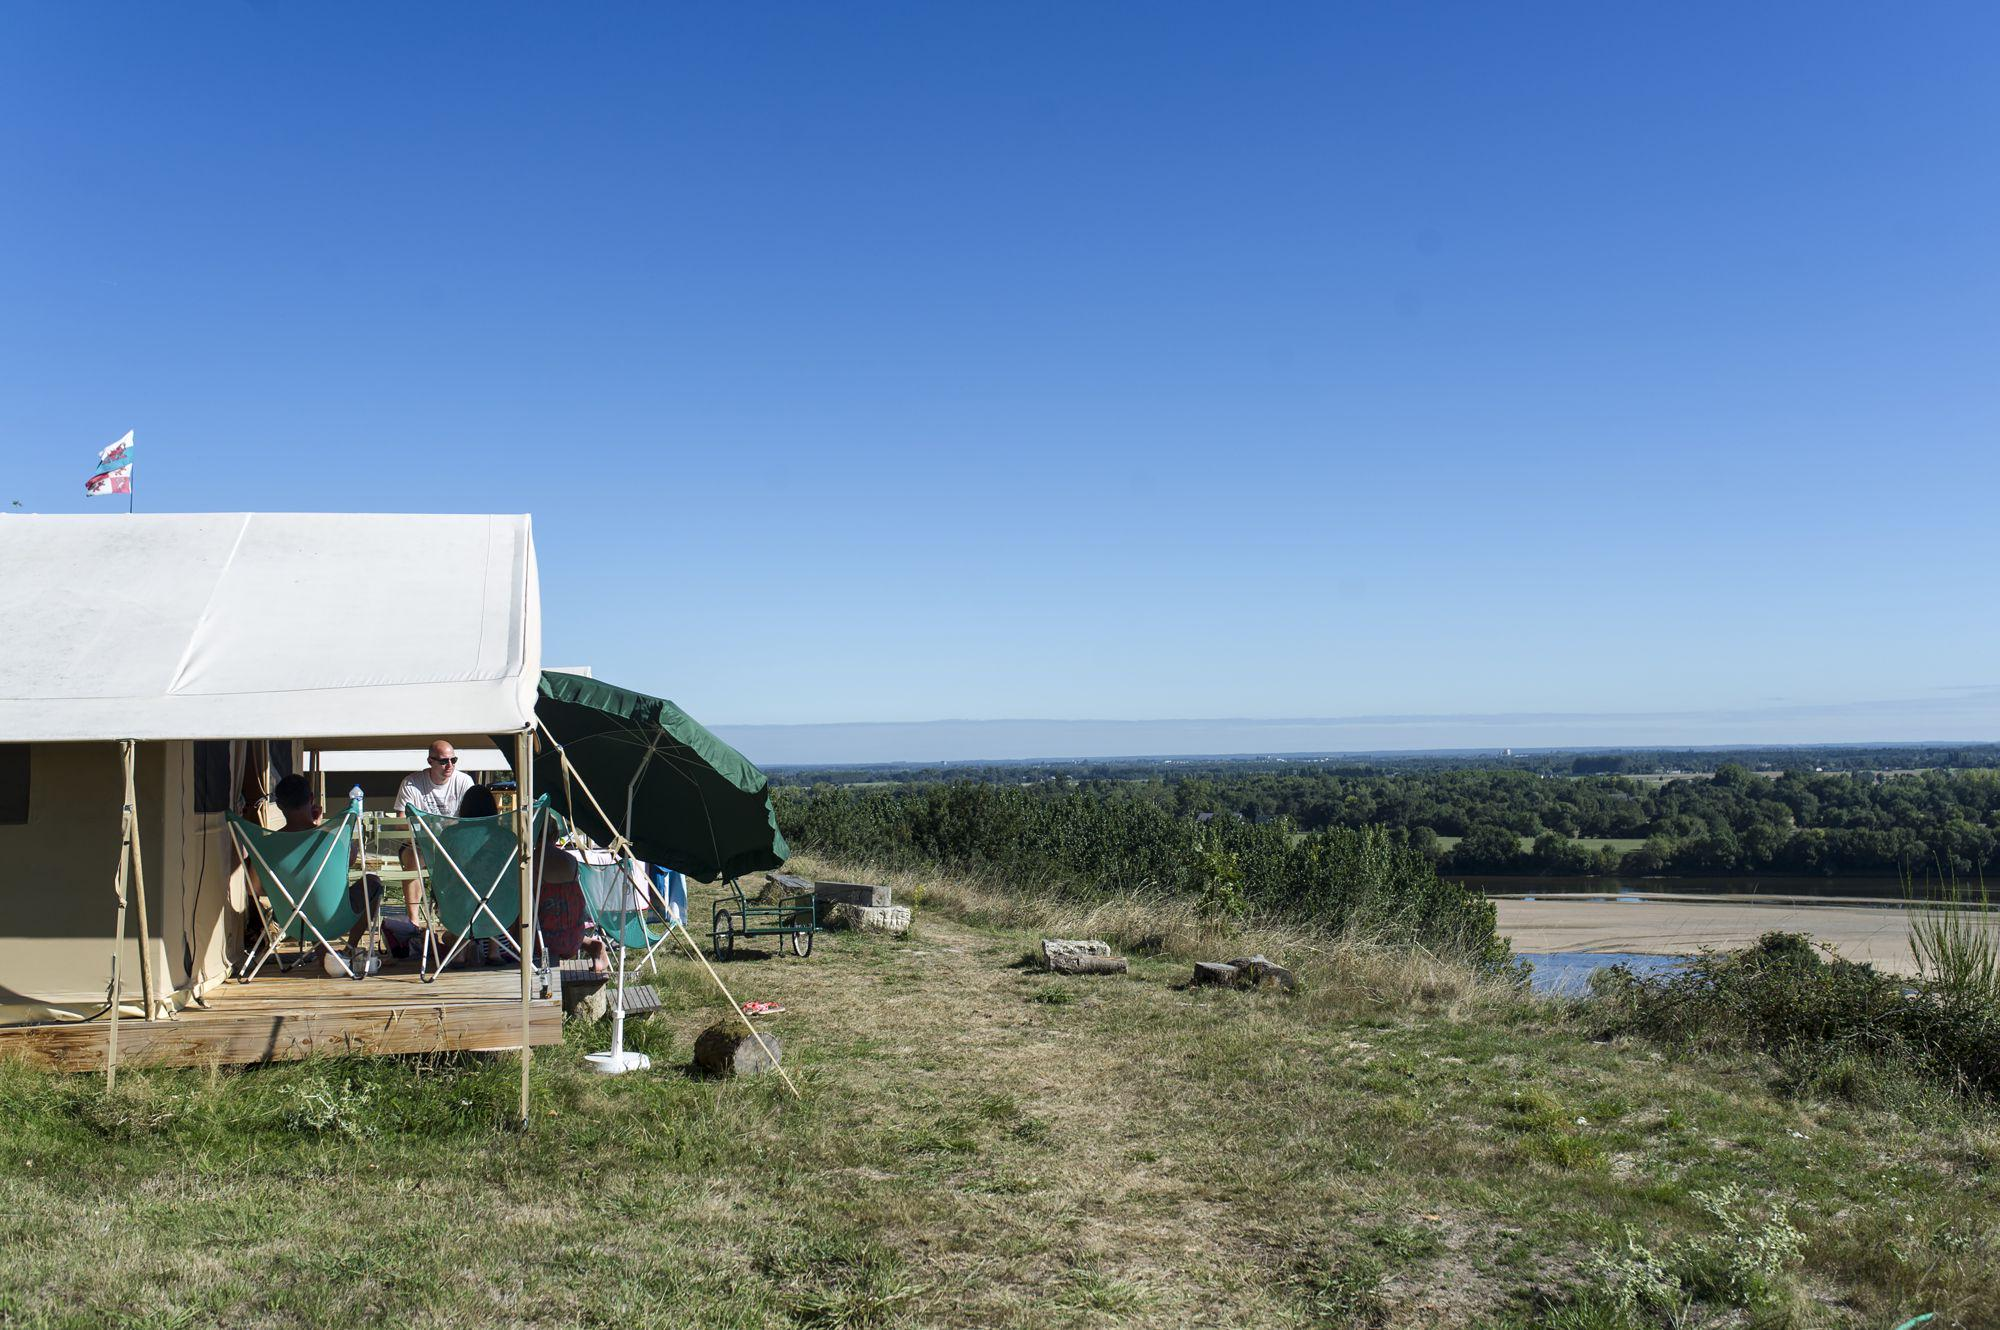 Glamping in Maine-et-Loire | Glamping Sites in Maine-et-Loire, France